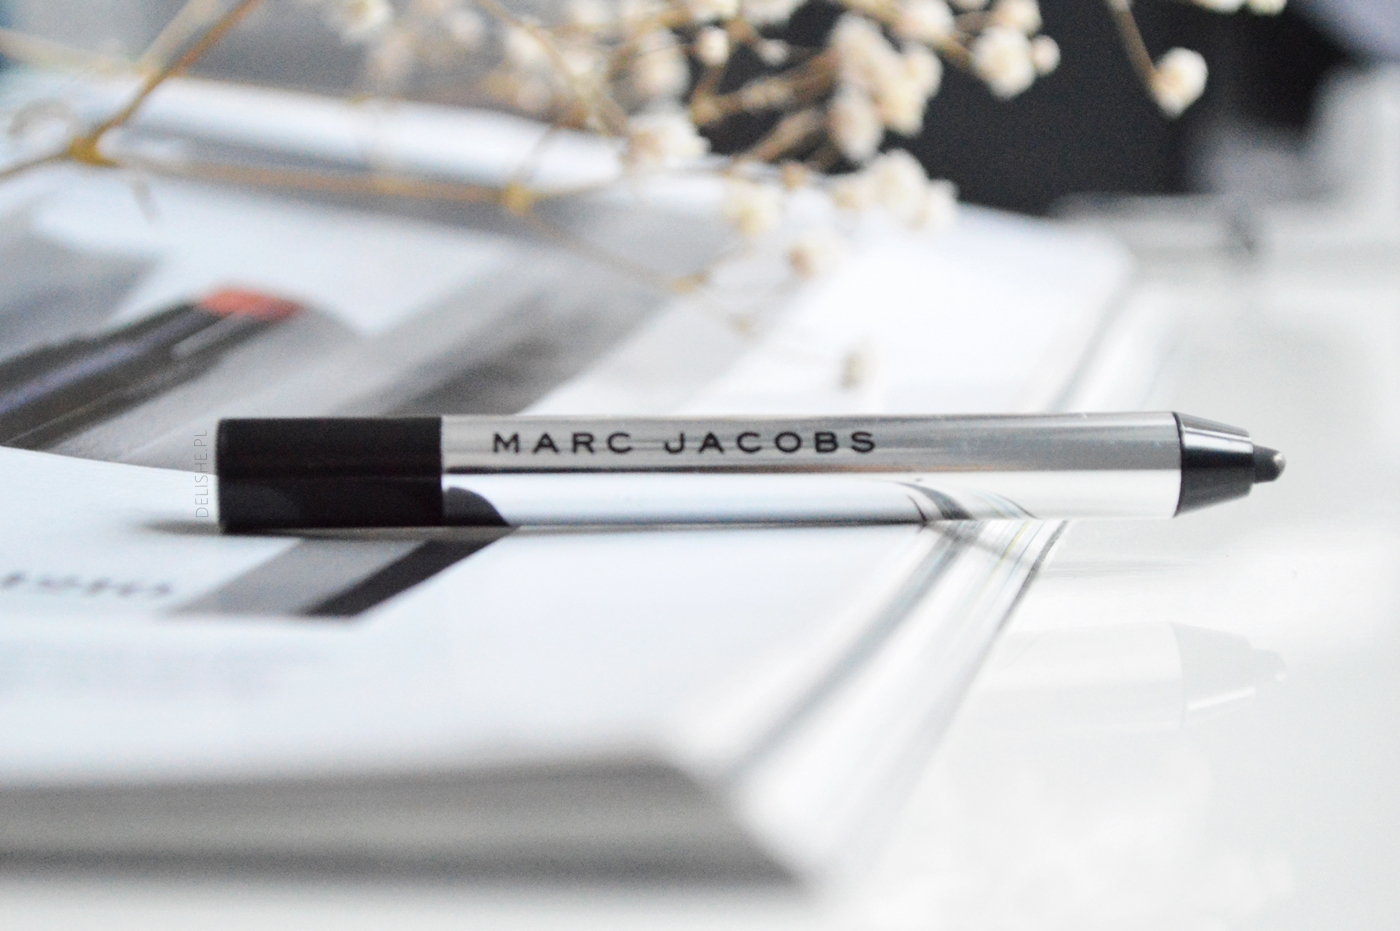 marc jacobs żelowa kredka do oczu